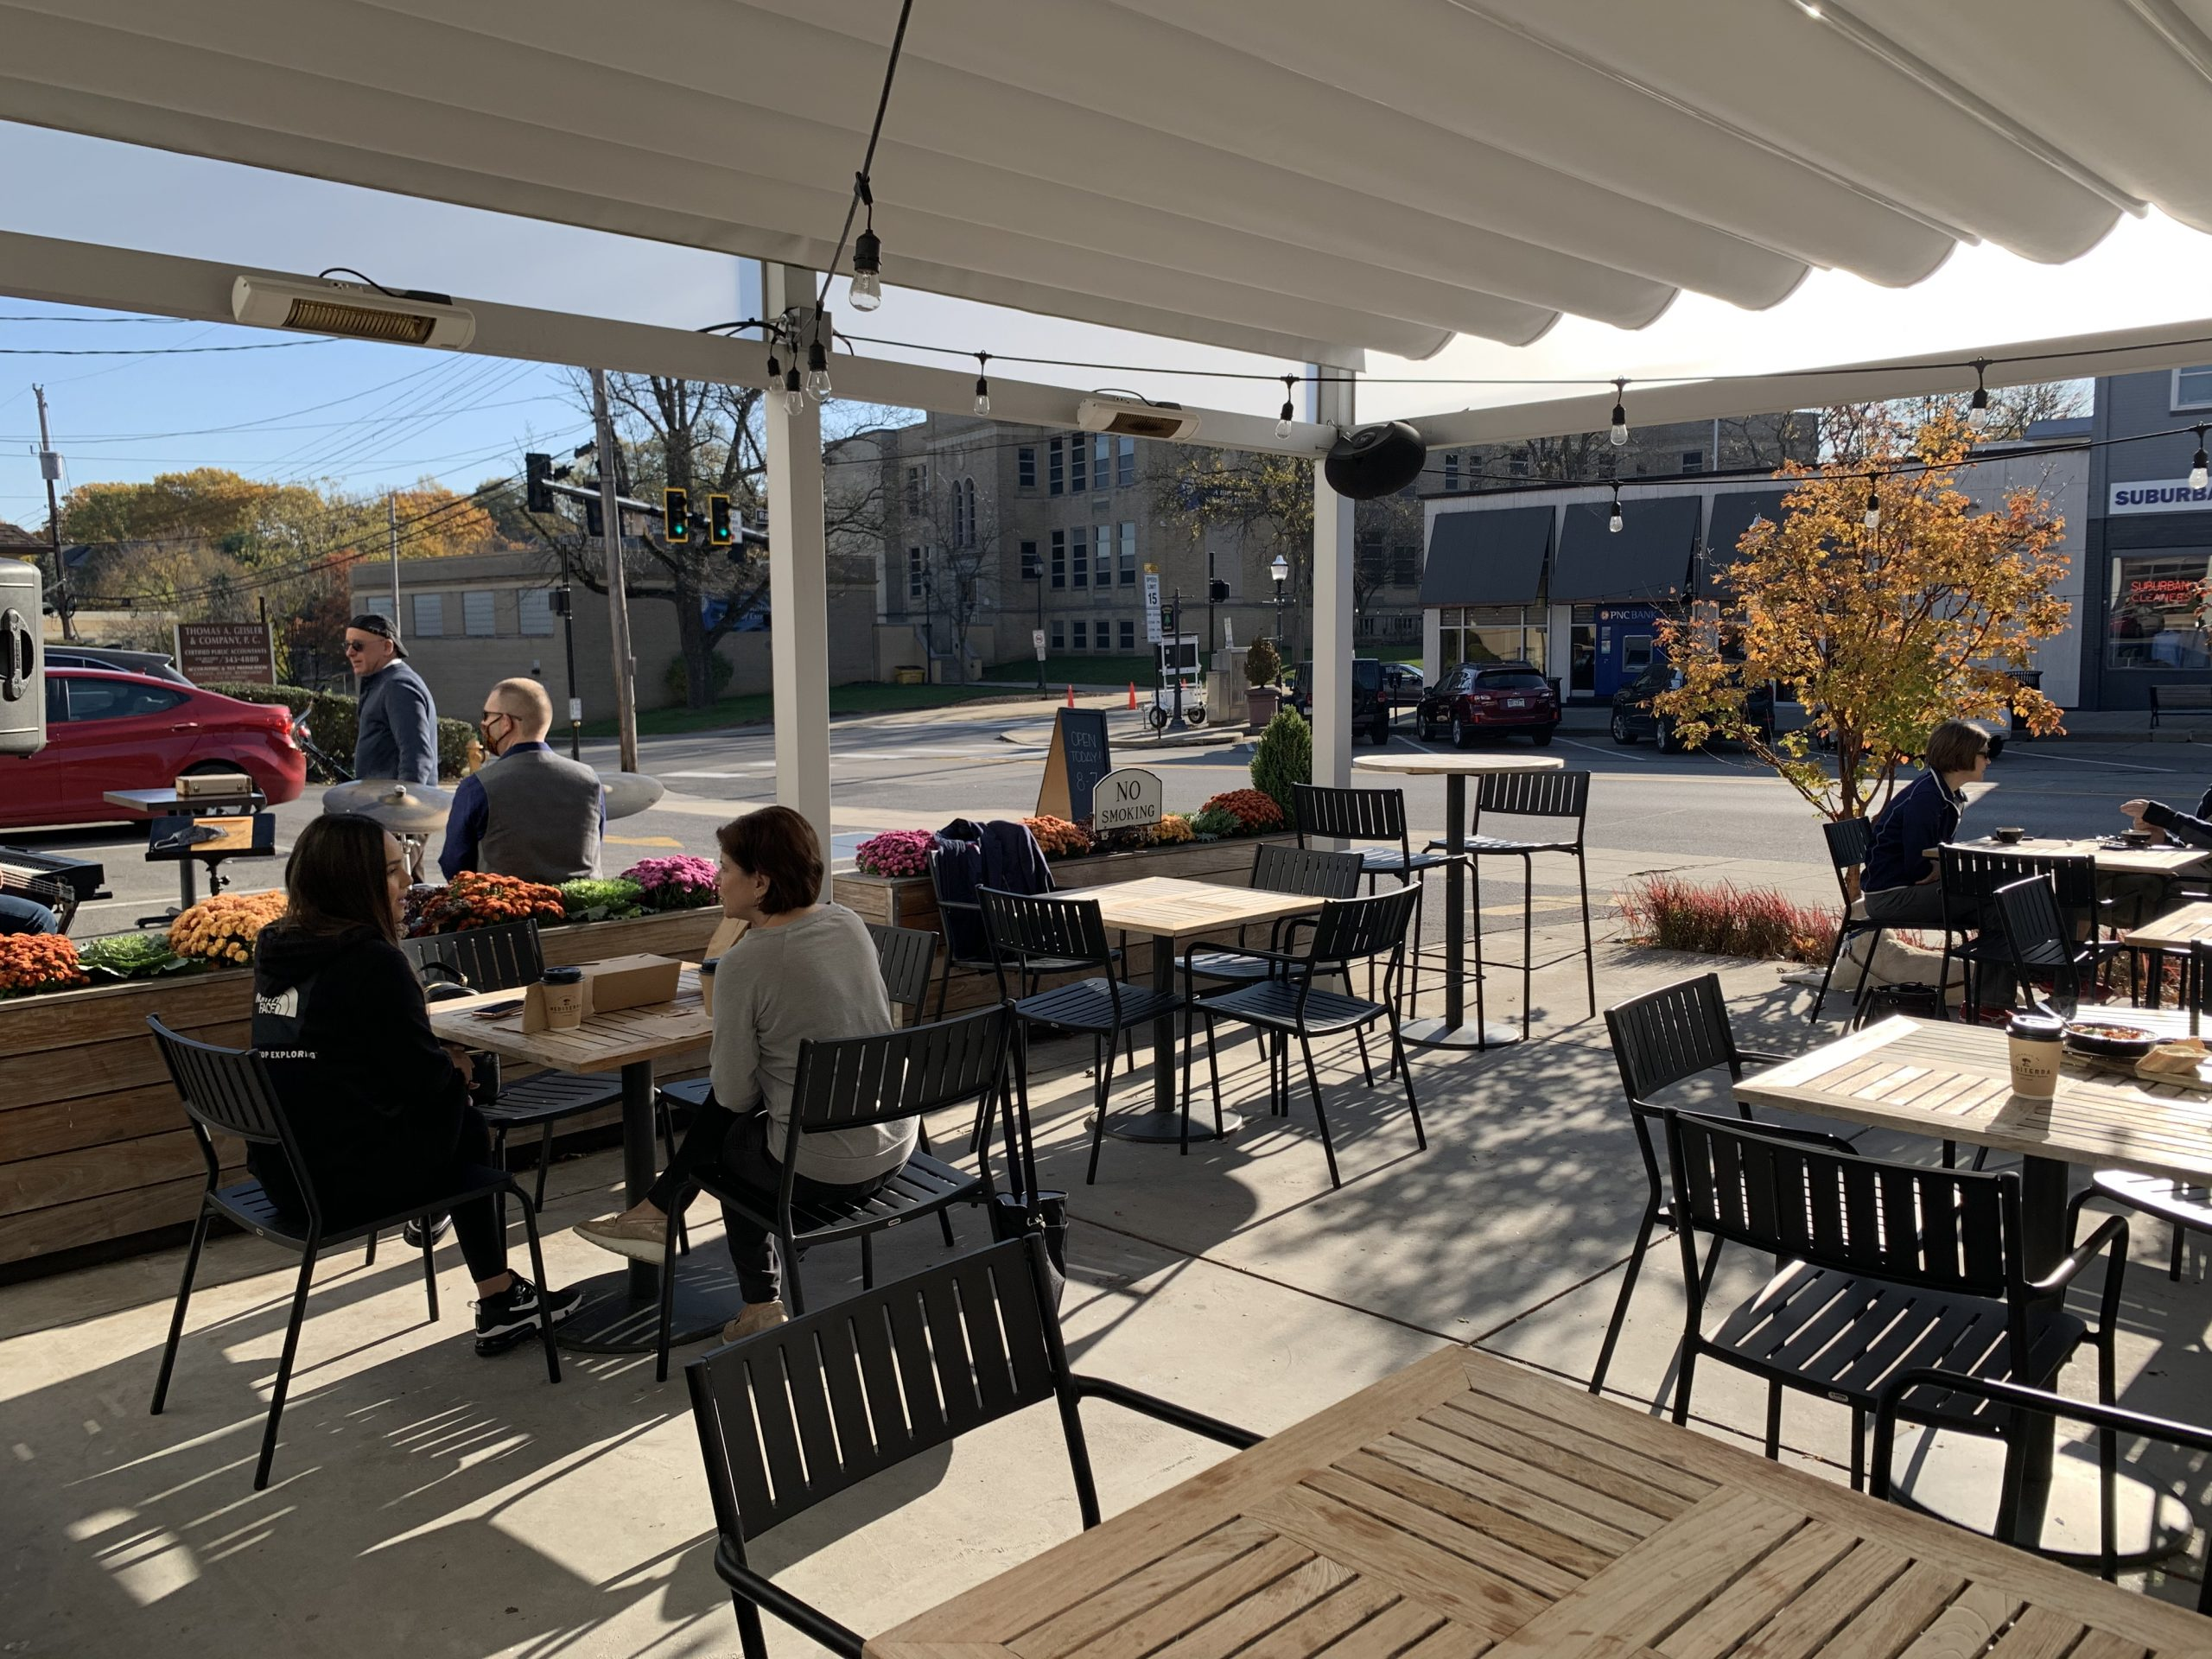 A look at the patio of Mediterra Cafe on Beverly Road.